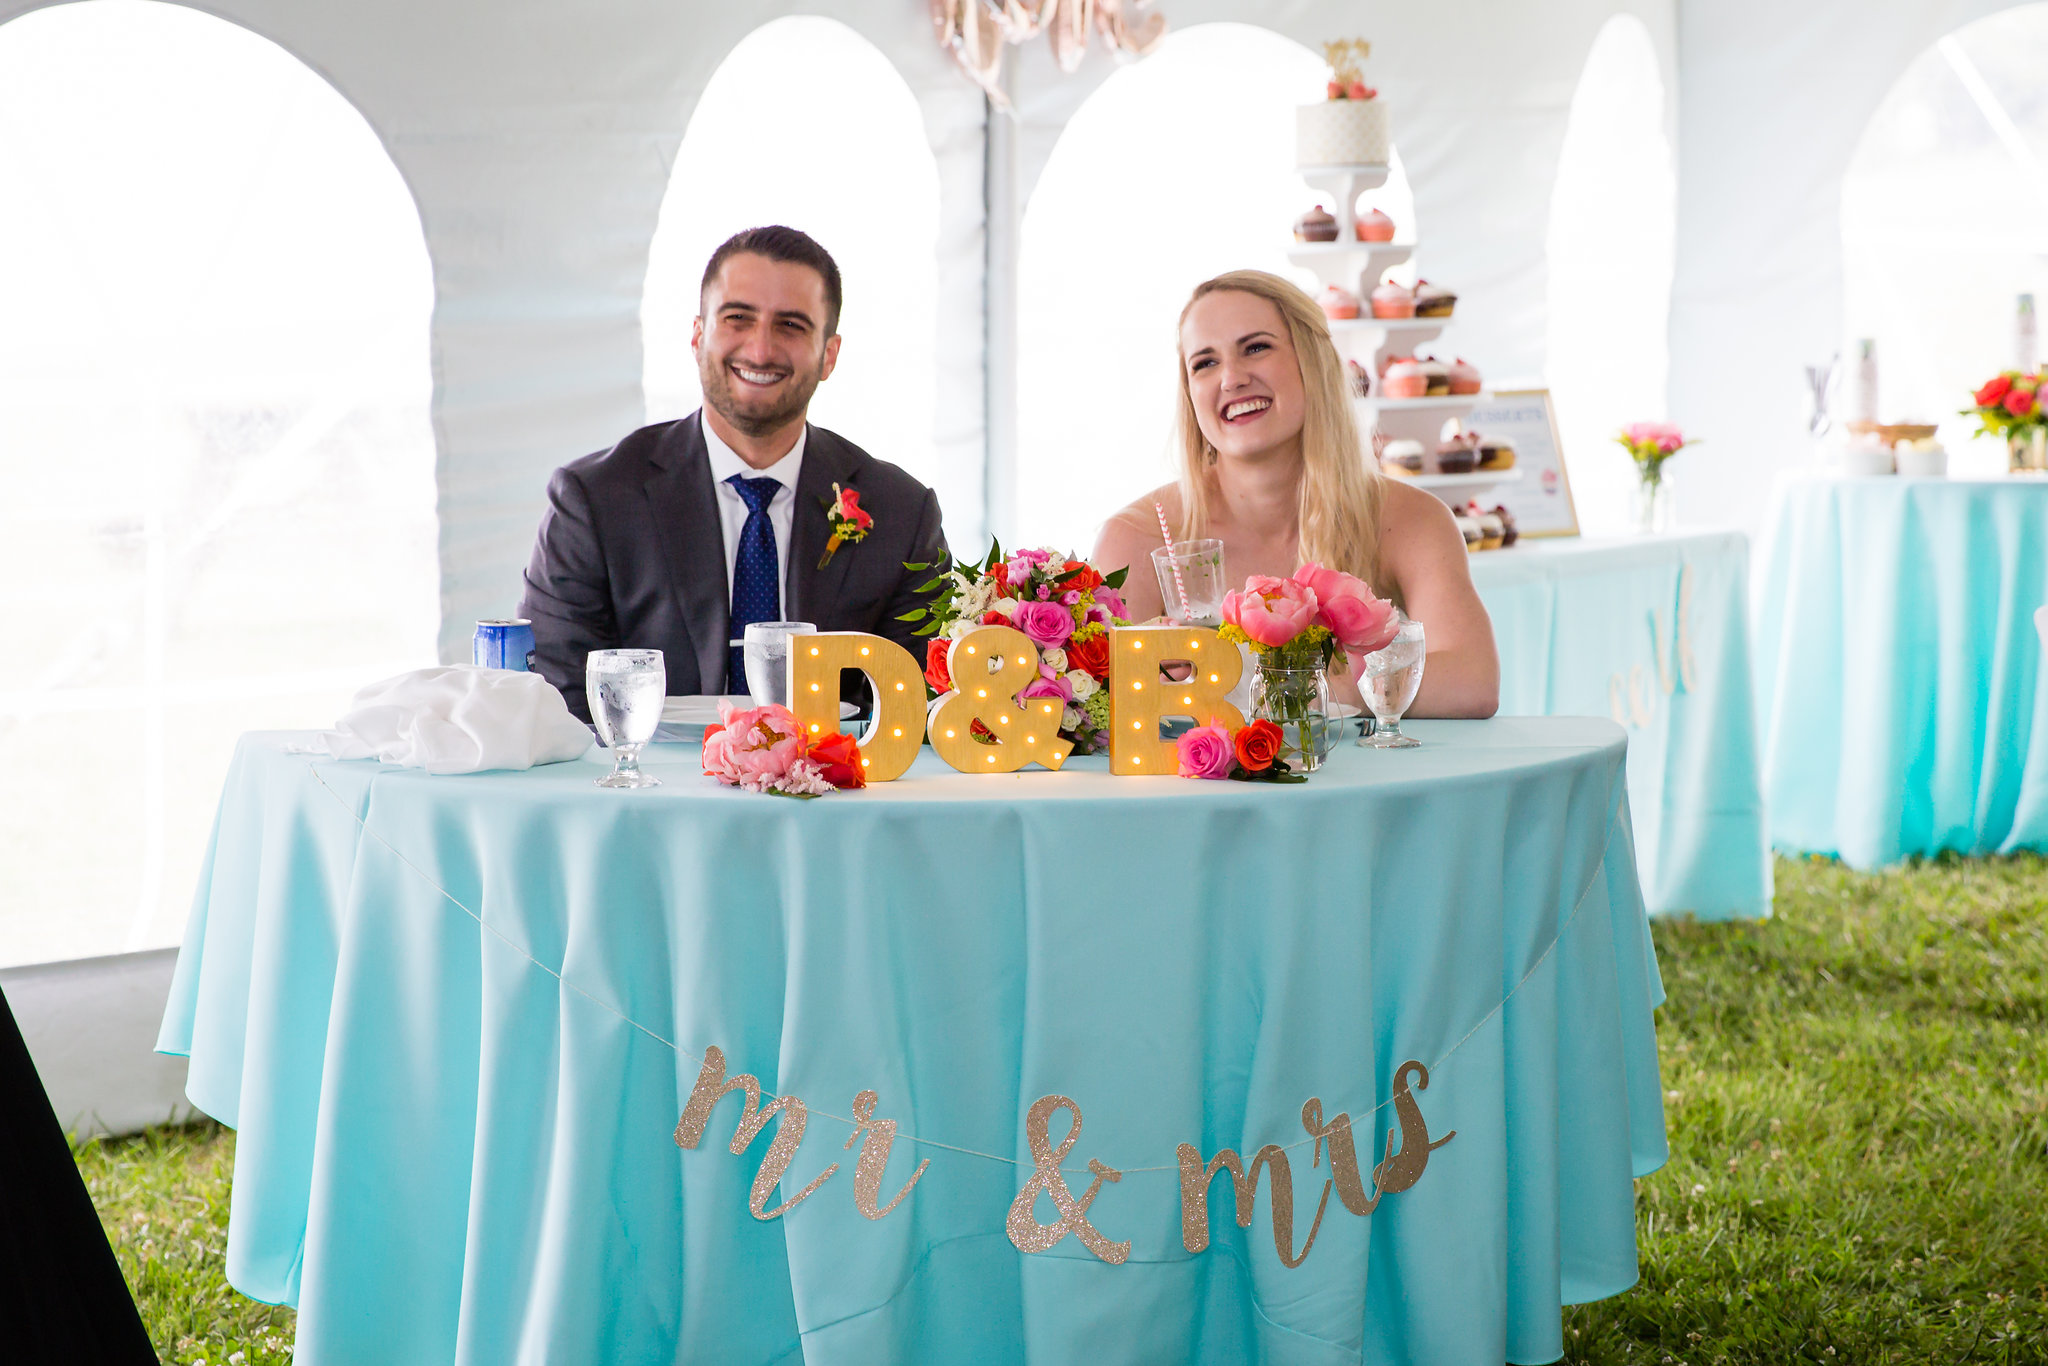 brielle-davis-events-weatherly-farm-waterfront-wedding-reception-bride-and-groom-enjoying-toasts.jpg